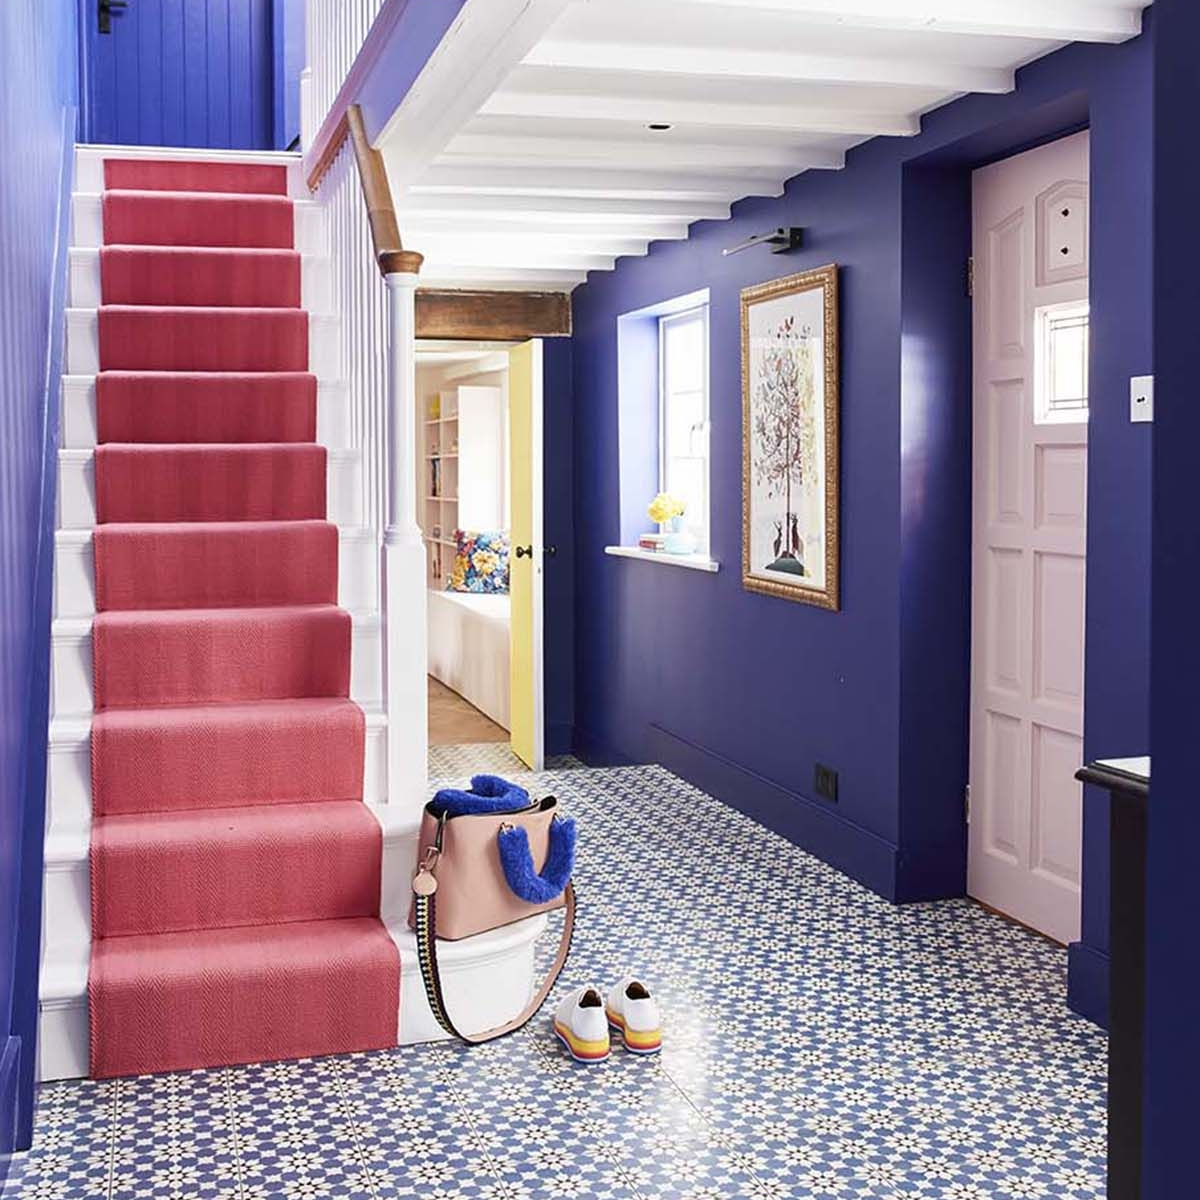 At home with interior designer Sophie Robinson. Her bright and cheery hallway has dramatic bluewalls painted in Lapis by Zoffany, blue patterned tiles by Claybrook and a bright Rose stair runner by Roger Oates